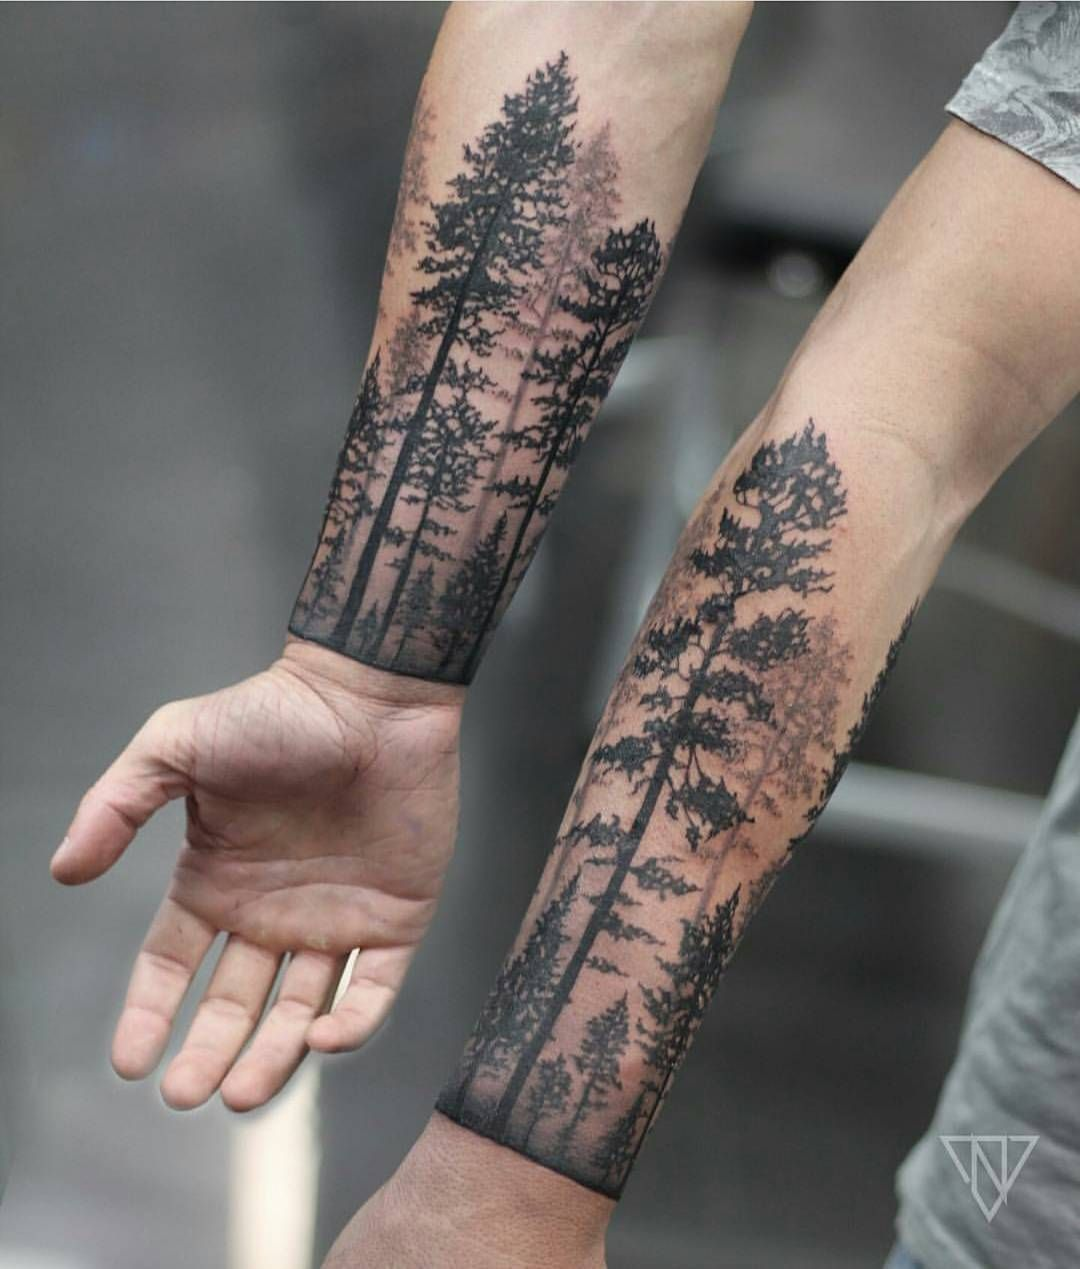 e9bc0b25b Forrest cuff by niko.vaa   Donnie forest tattoo sleeve   Forest ...